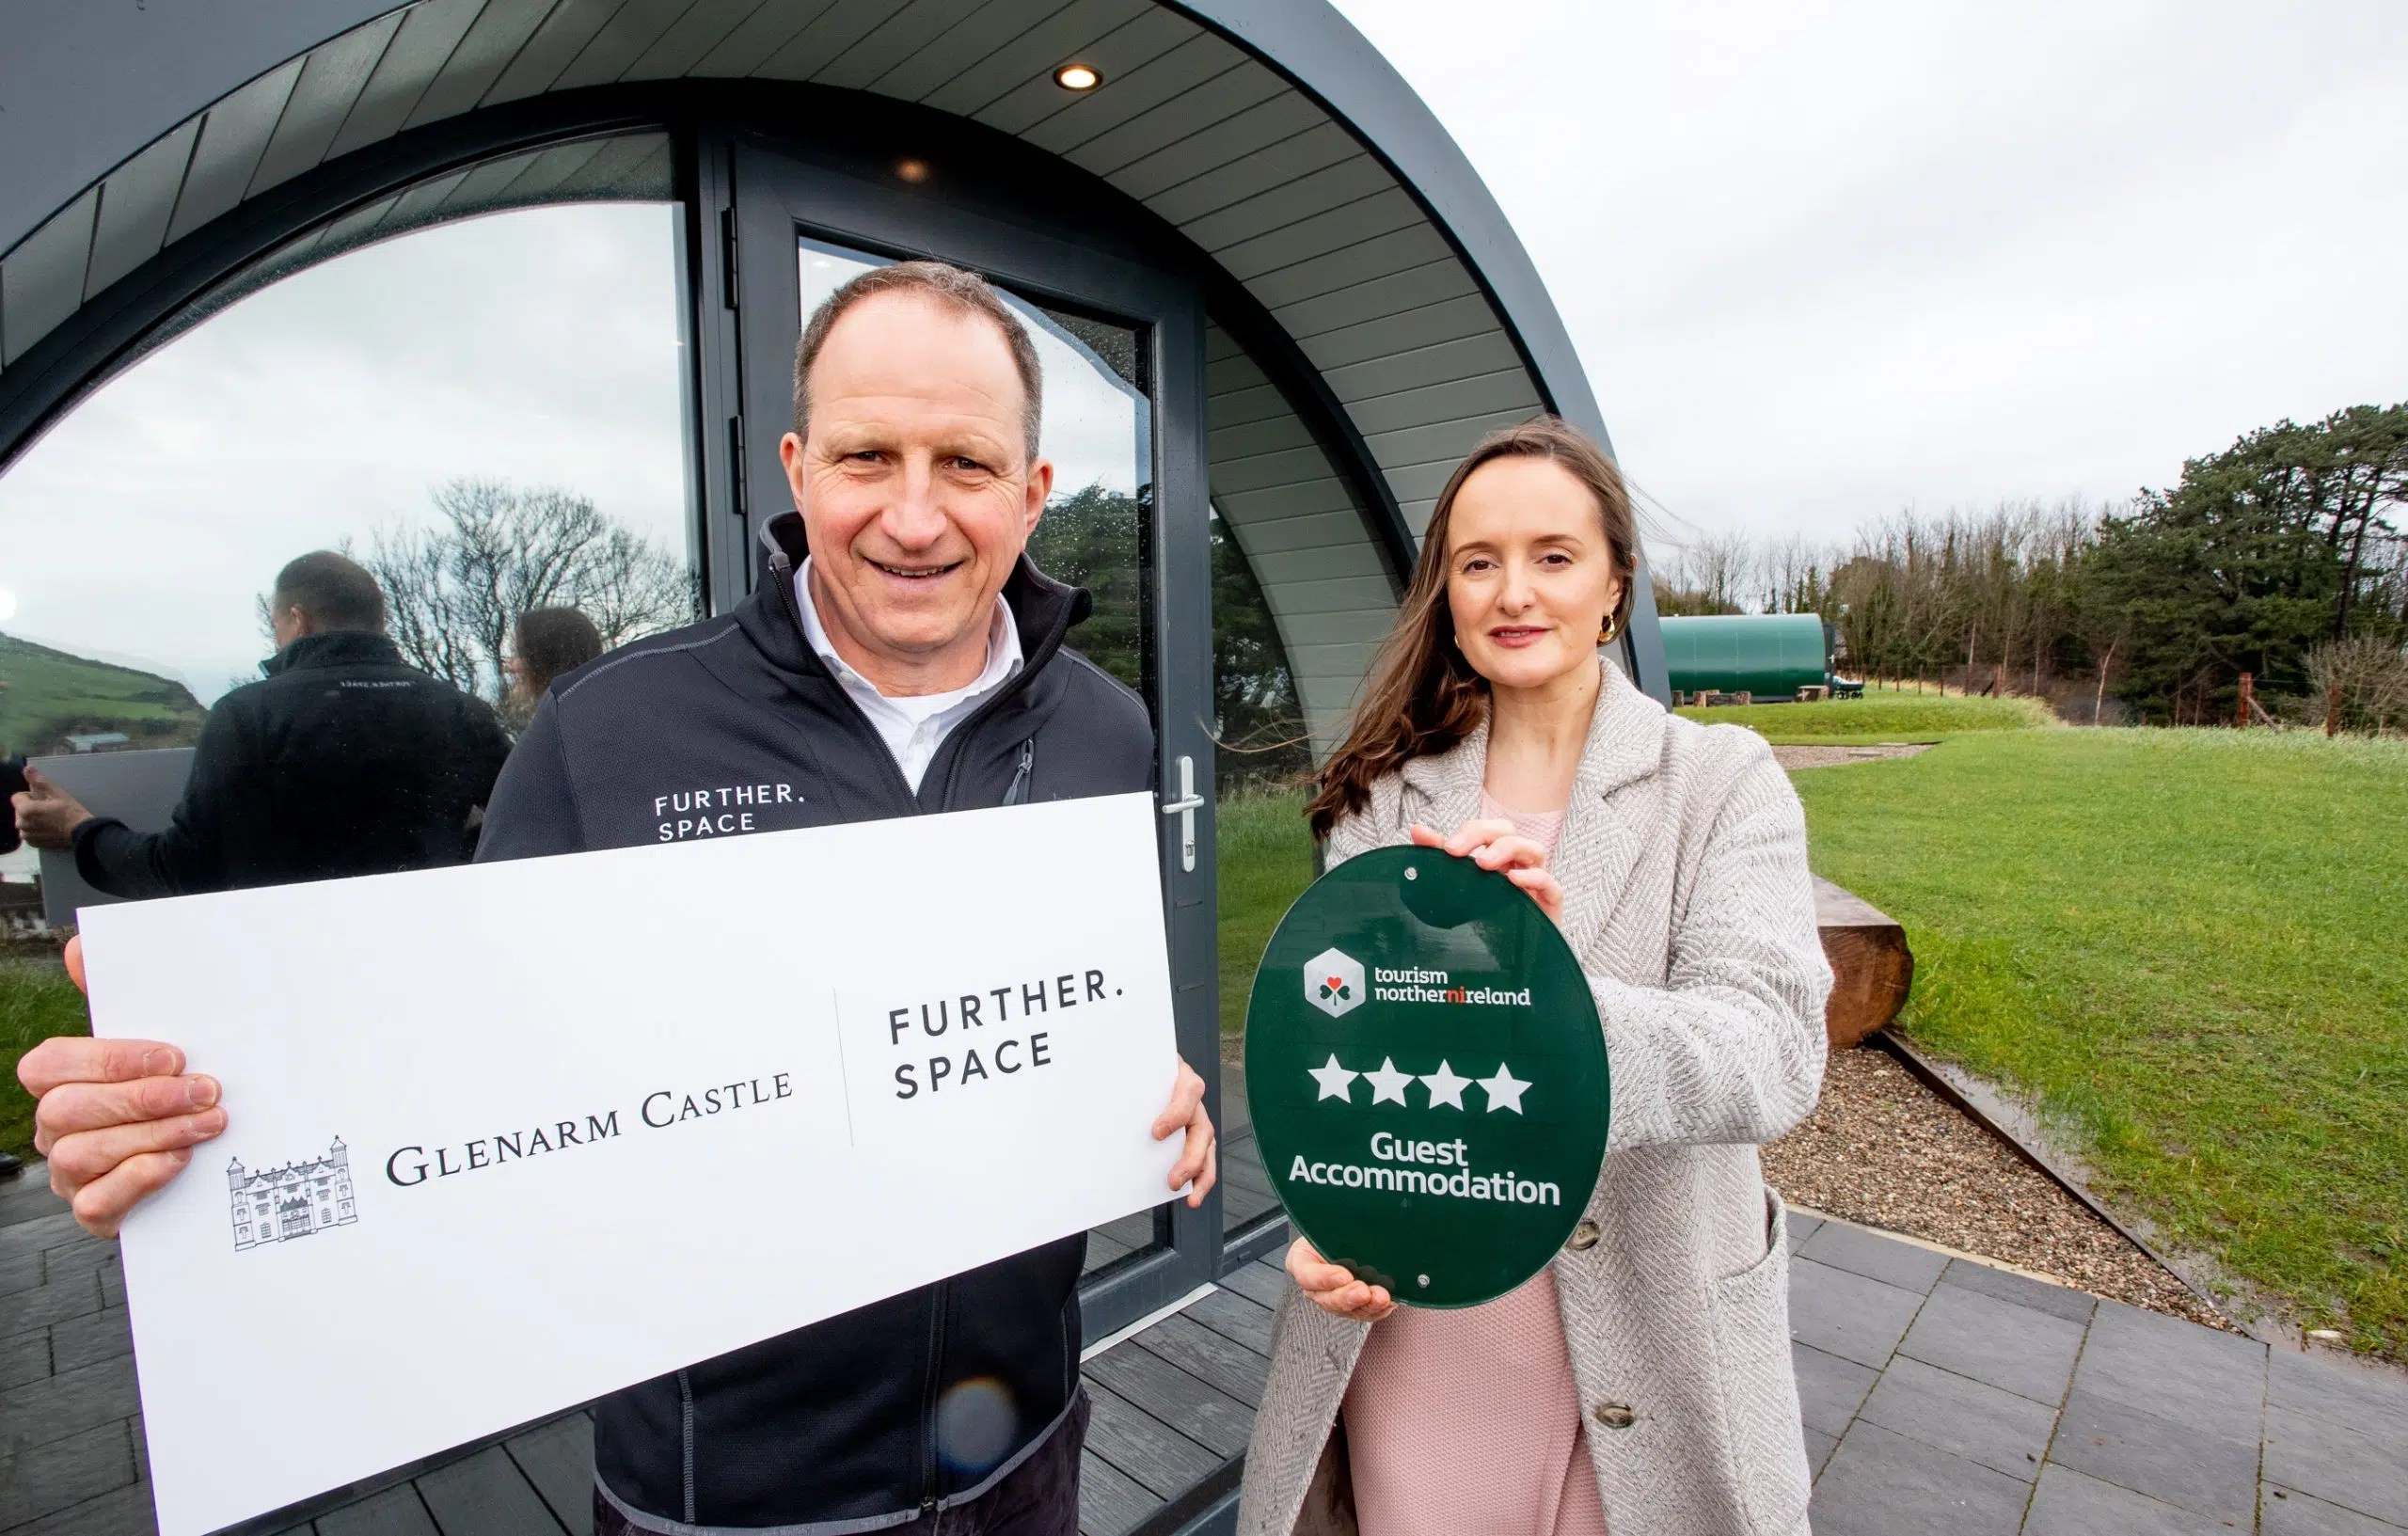 Glenarm Castle Glamping Pods Awarded Four Stars by Tourism NI